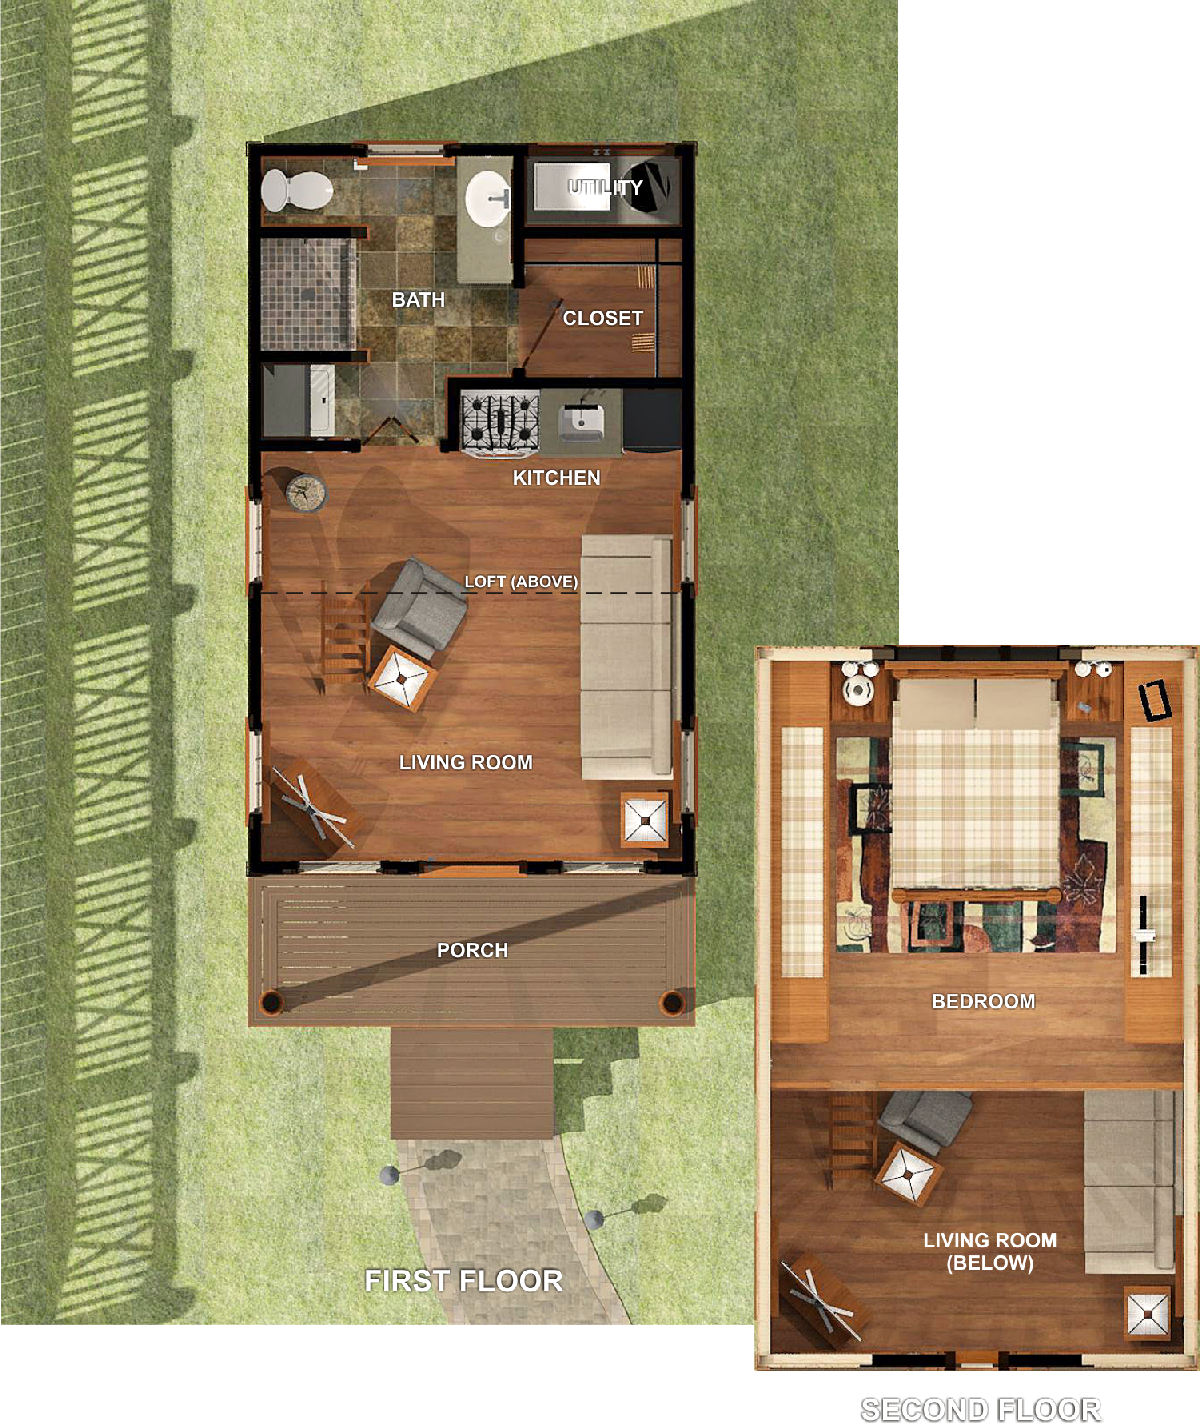 Texas tiny homes plan 448 for Small house plans texas